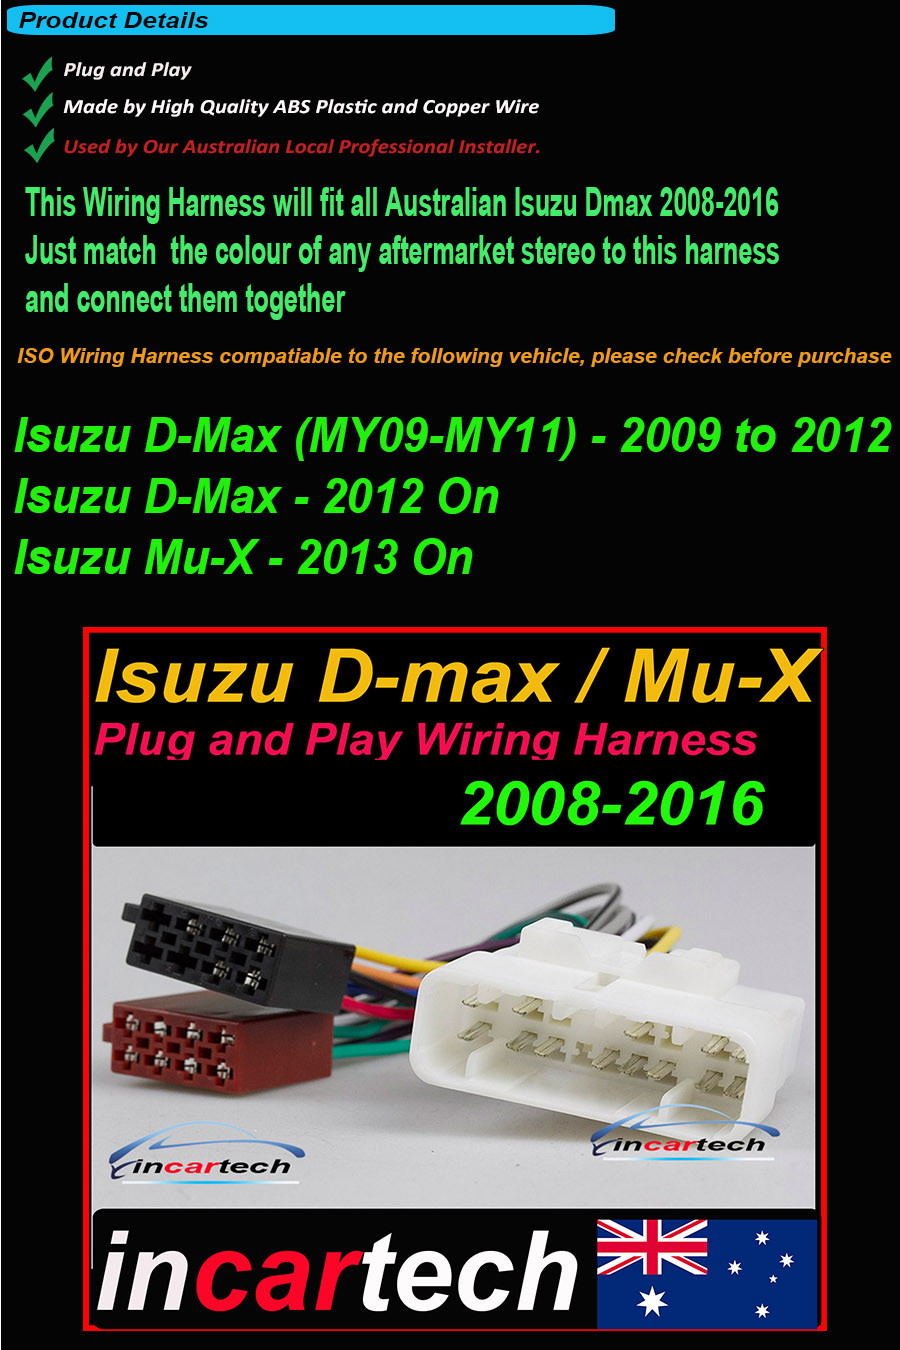 Isuzu D Max Iso Wiring Harness Adaptor Plug Wire Lead Aftermarket Radio Connector On 27 Jan 16 At 155734 Aedst Seller Added The Following Information